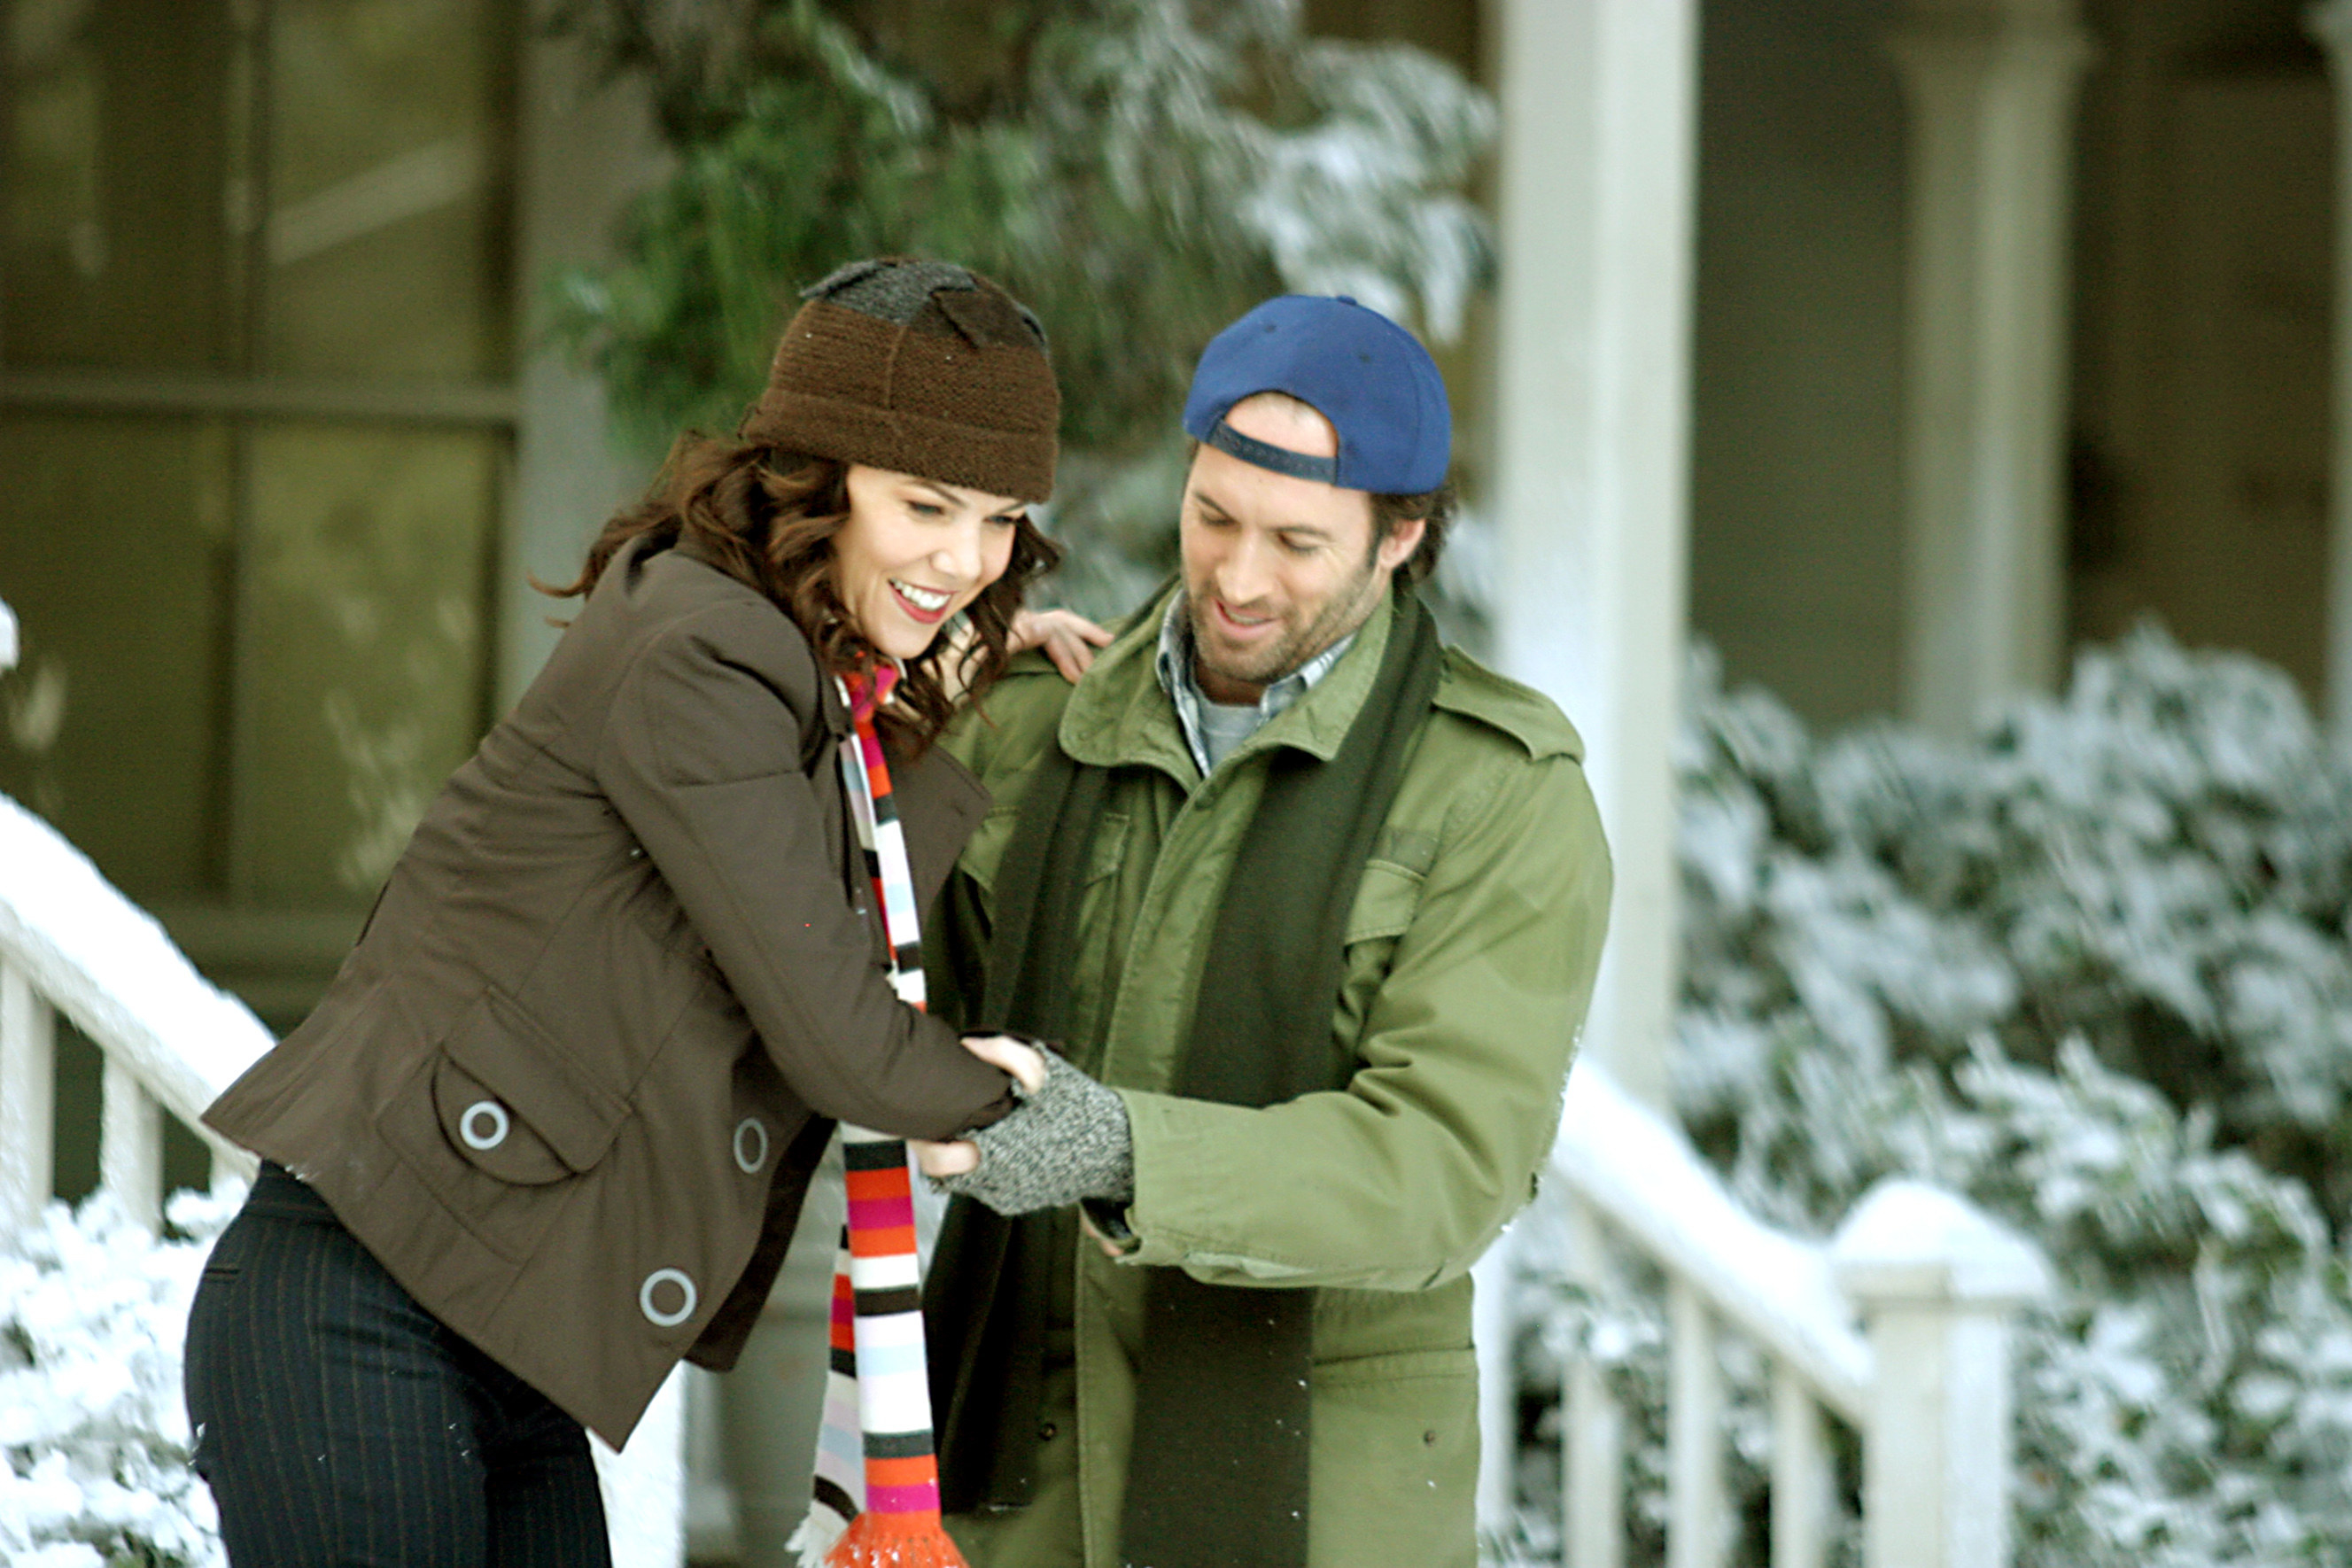 Scott Patterson helping Lauren Graham in a wintry scene